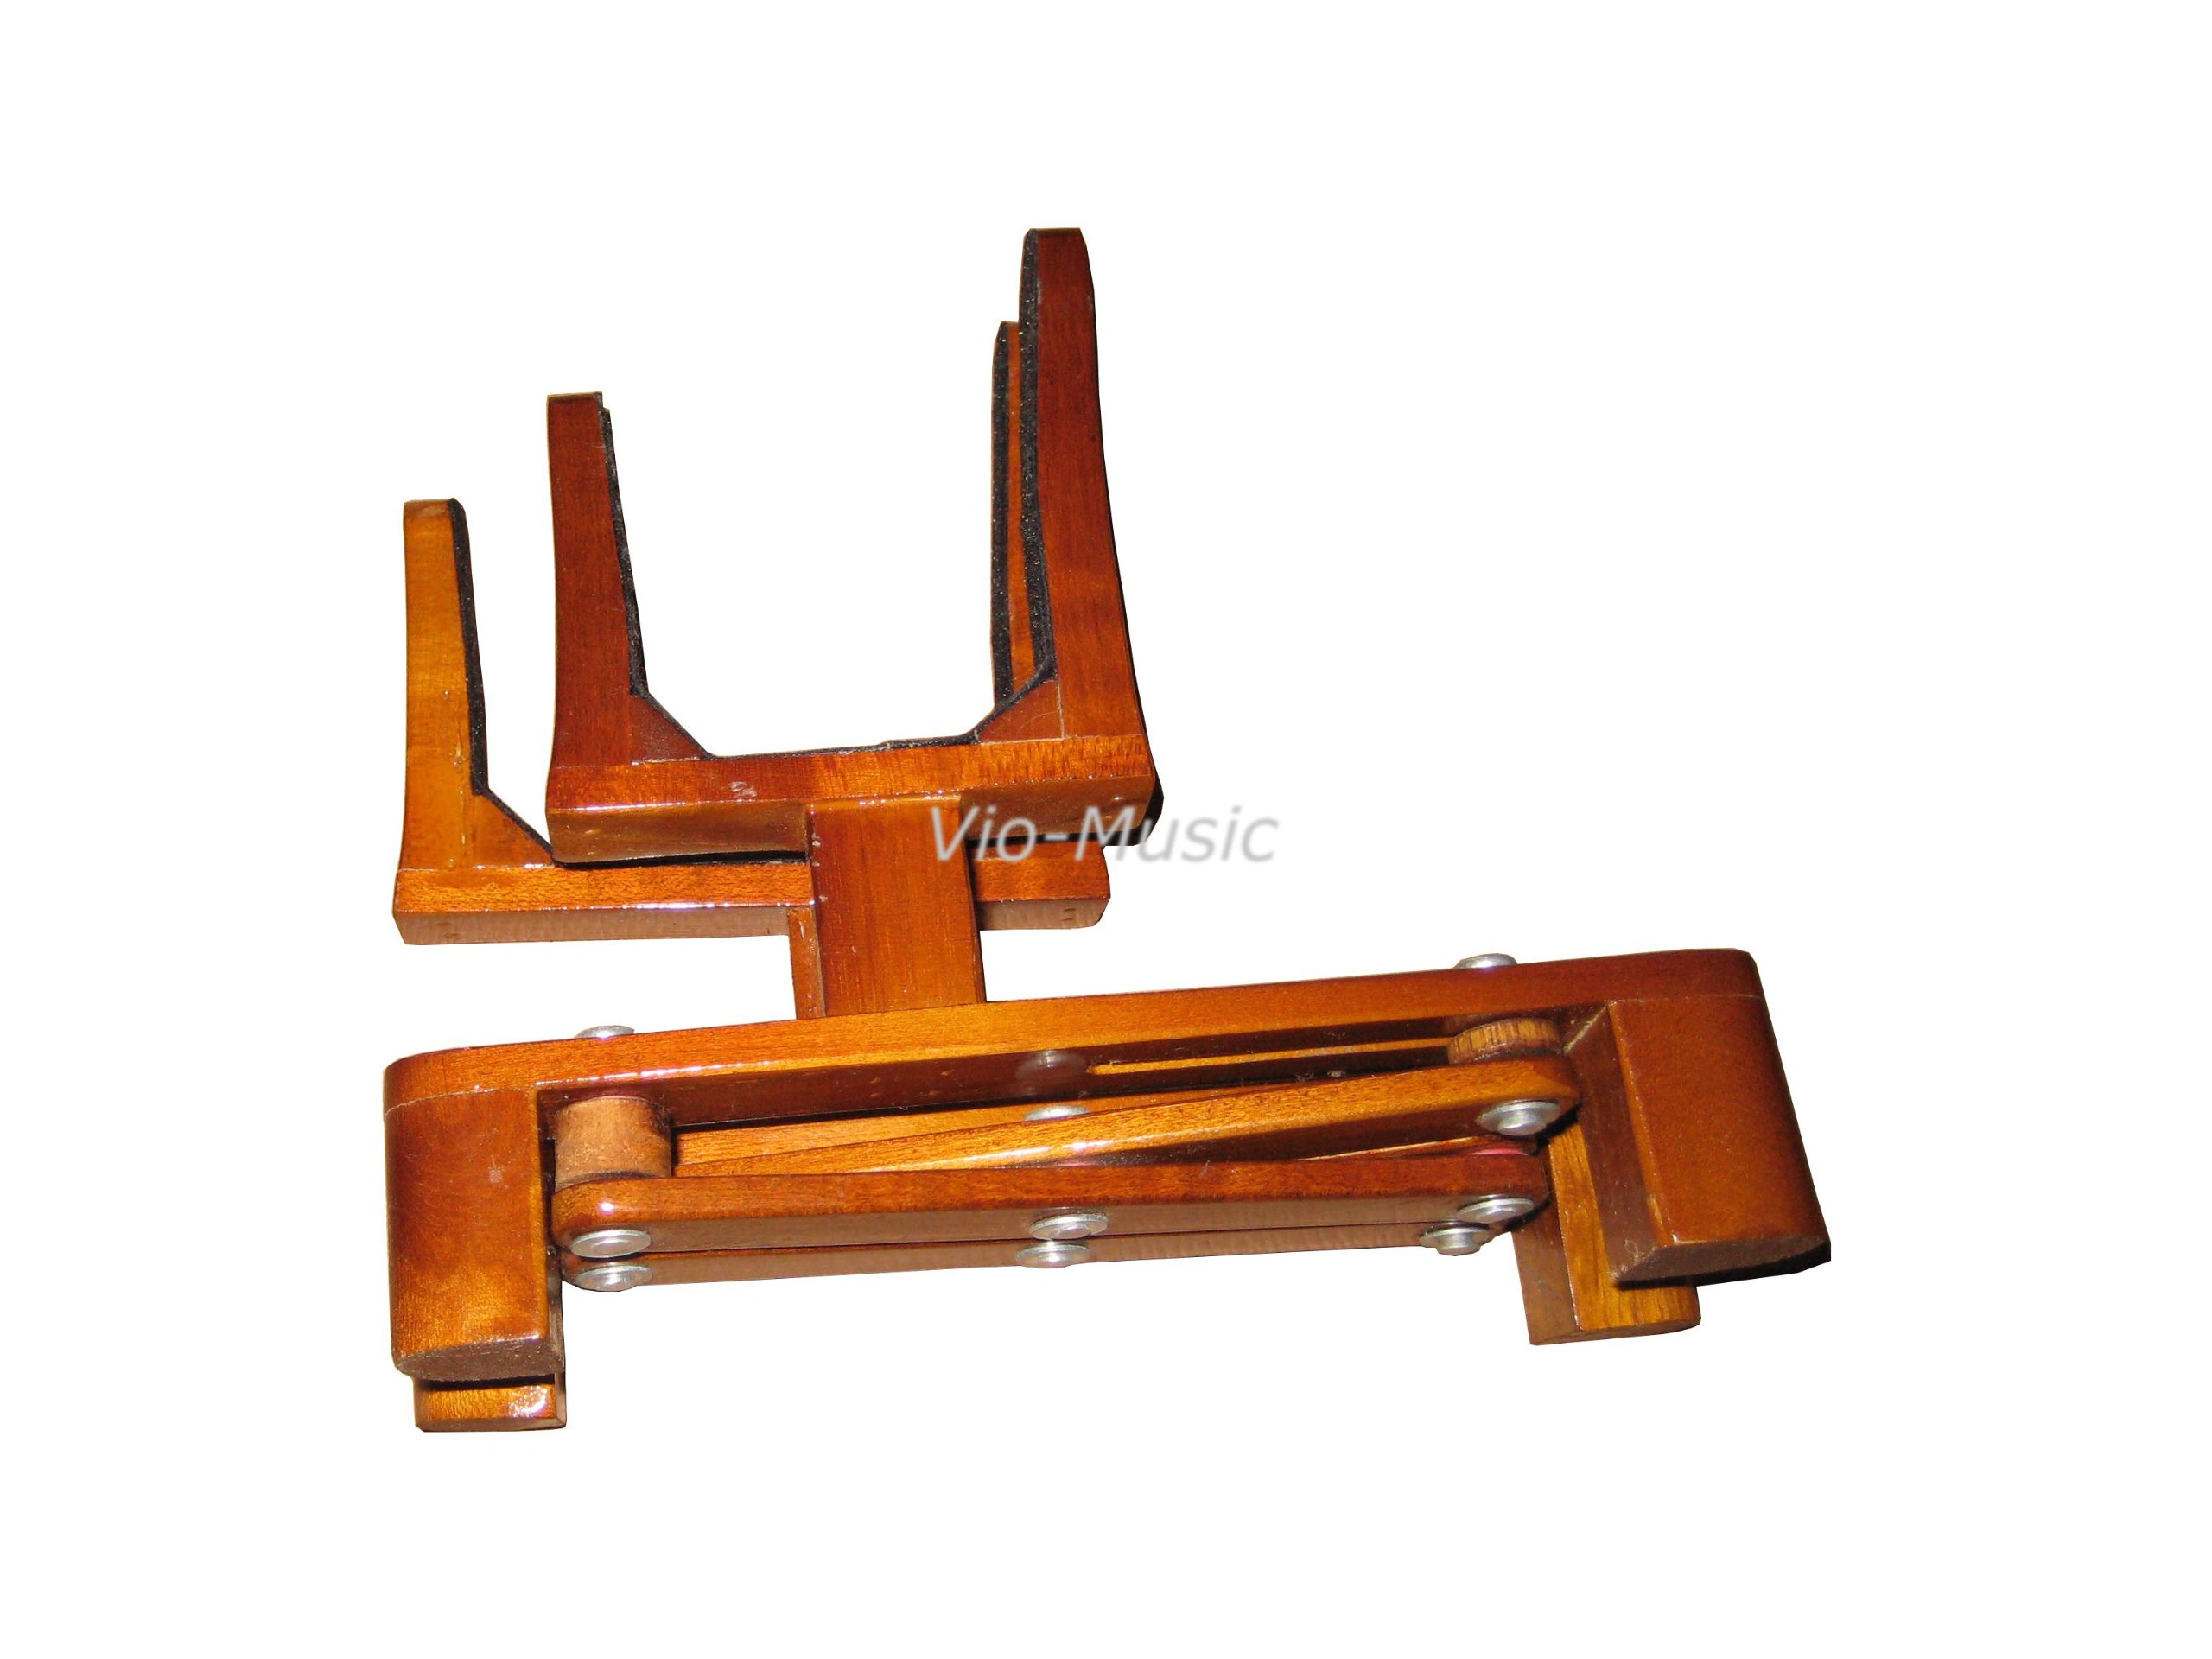 Adjustable Violin and Bow Wooden Holder, Portable